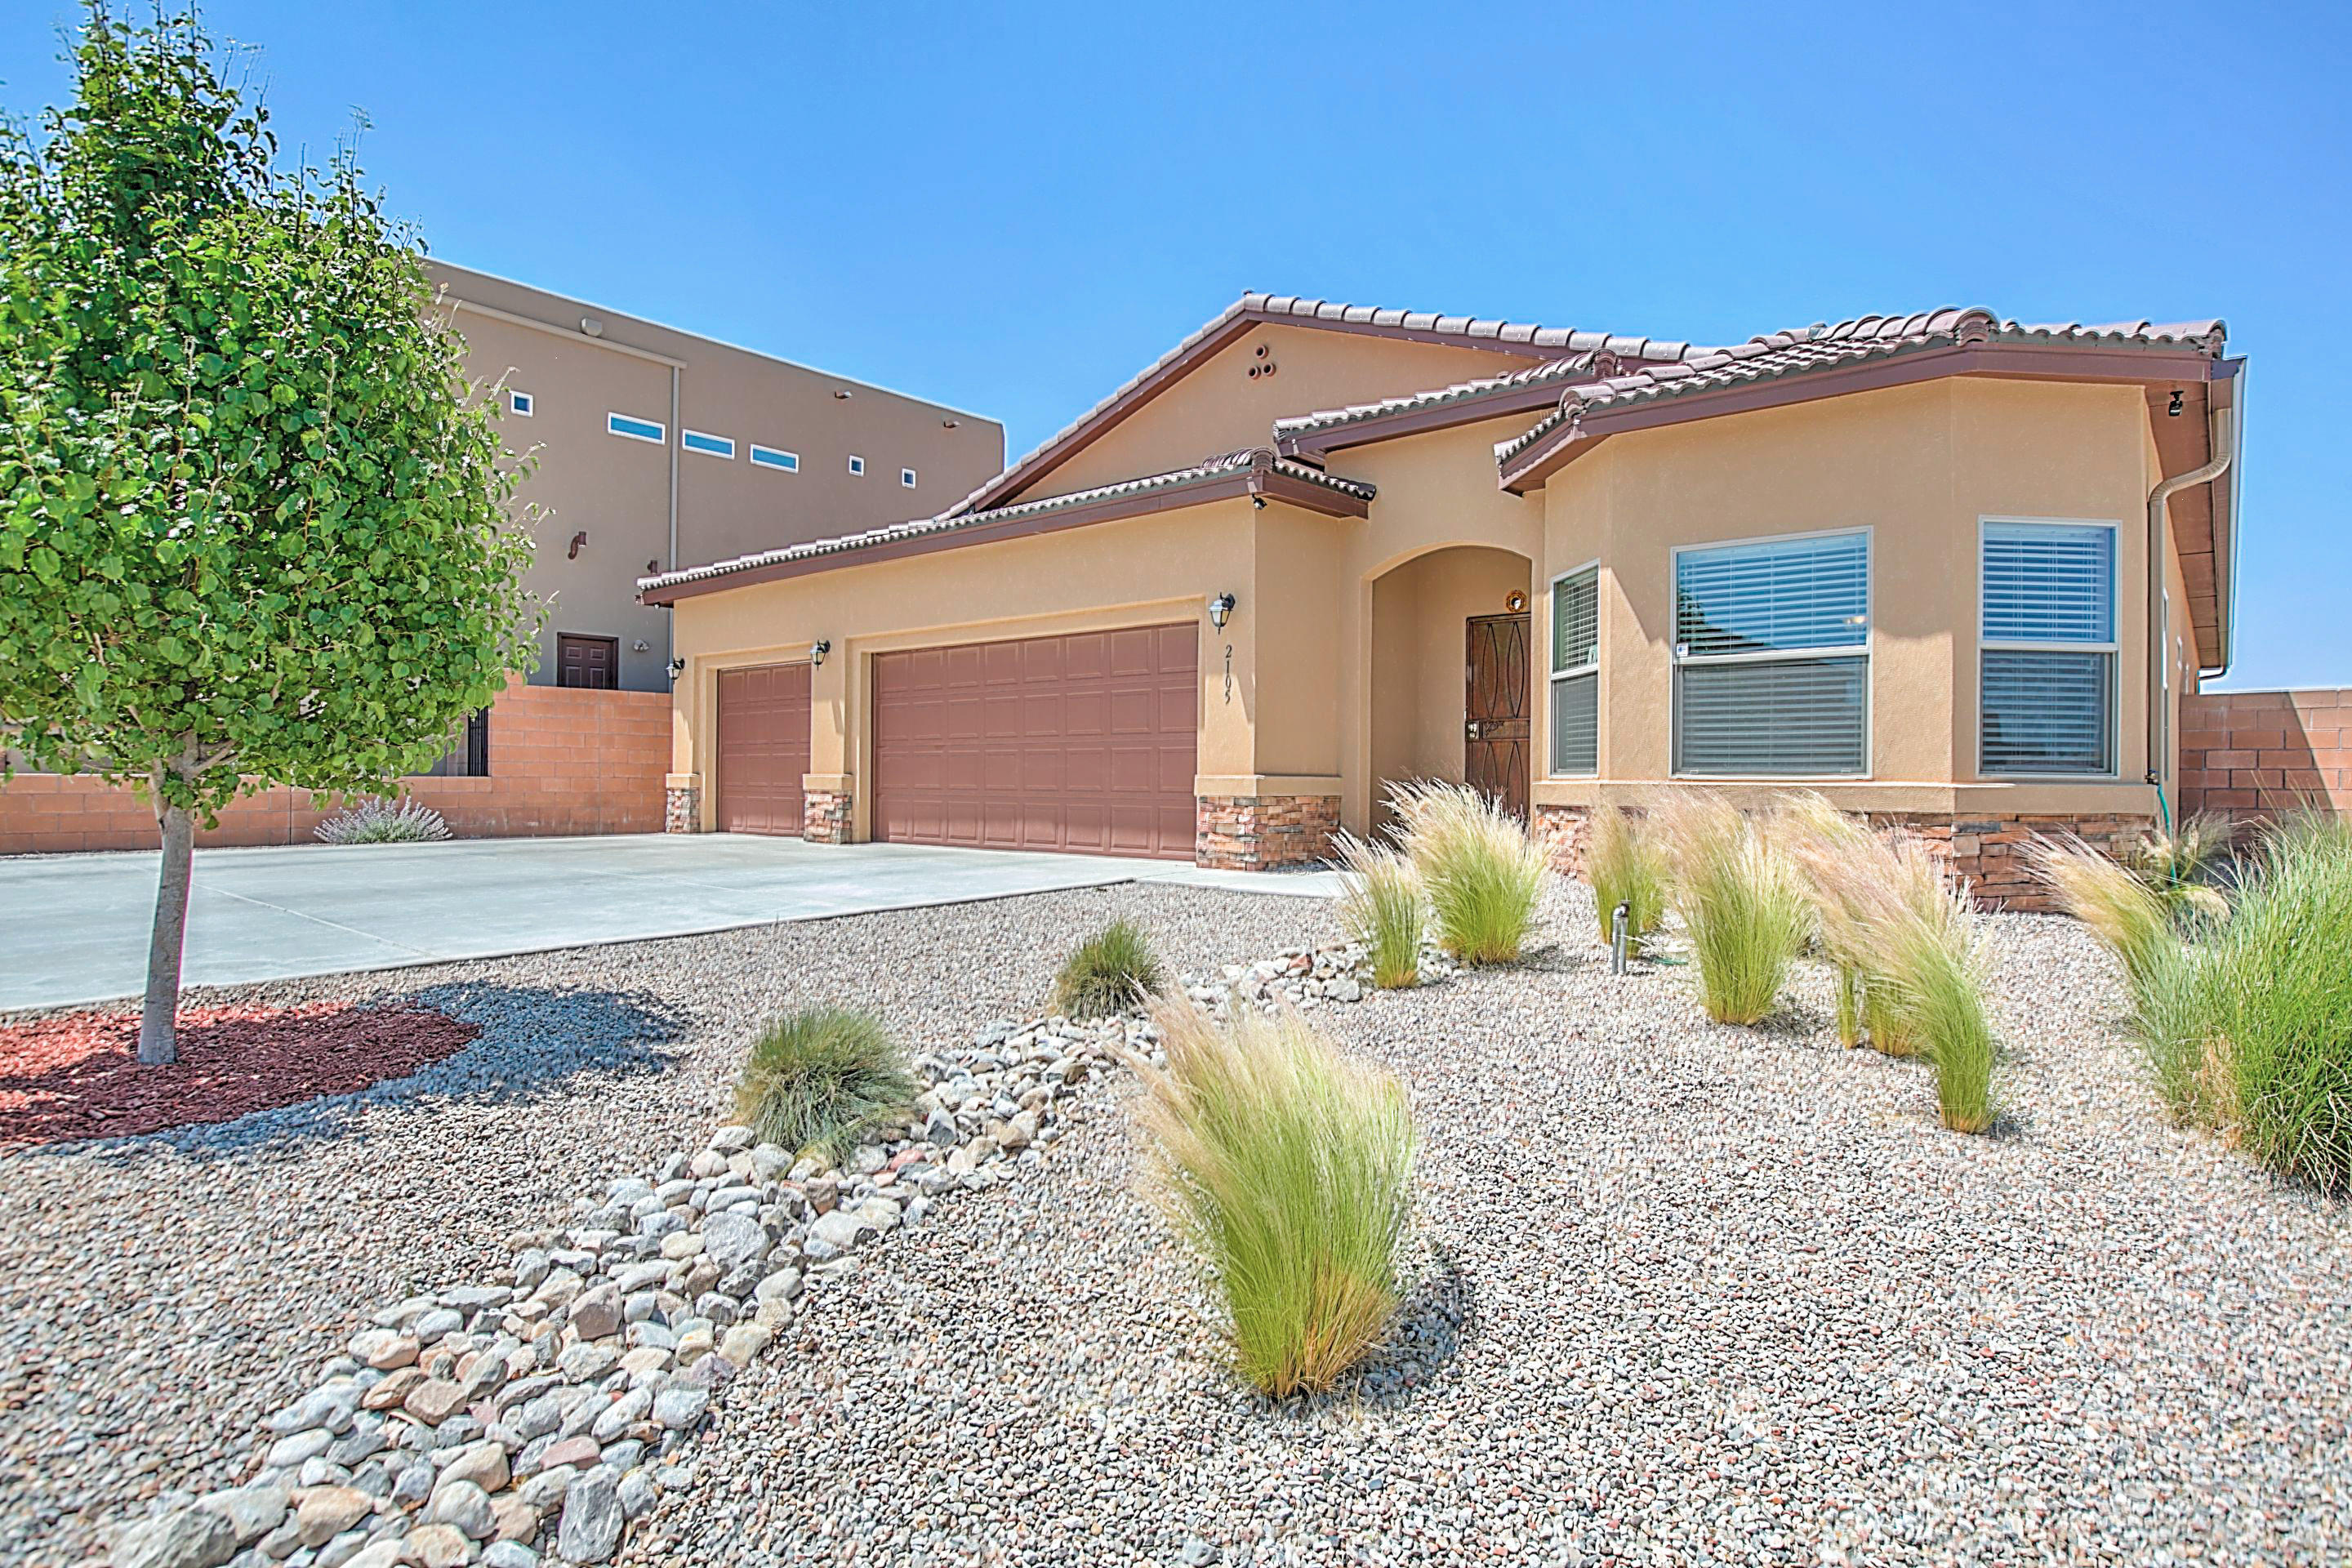 2105 RETAMA COURT SE, ALBUQUERQUE, NM 87123